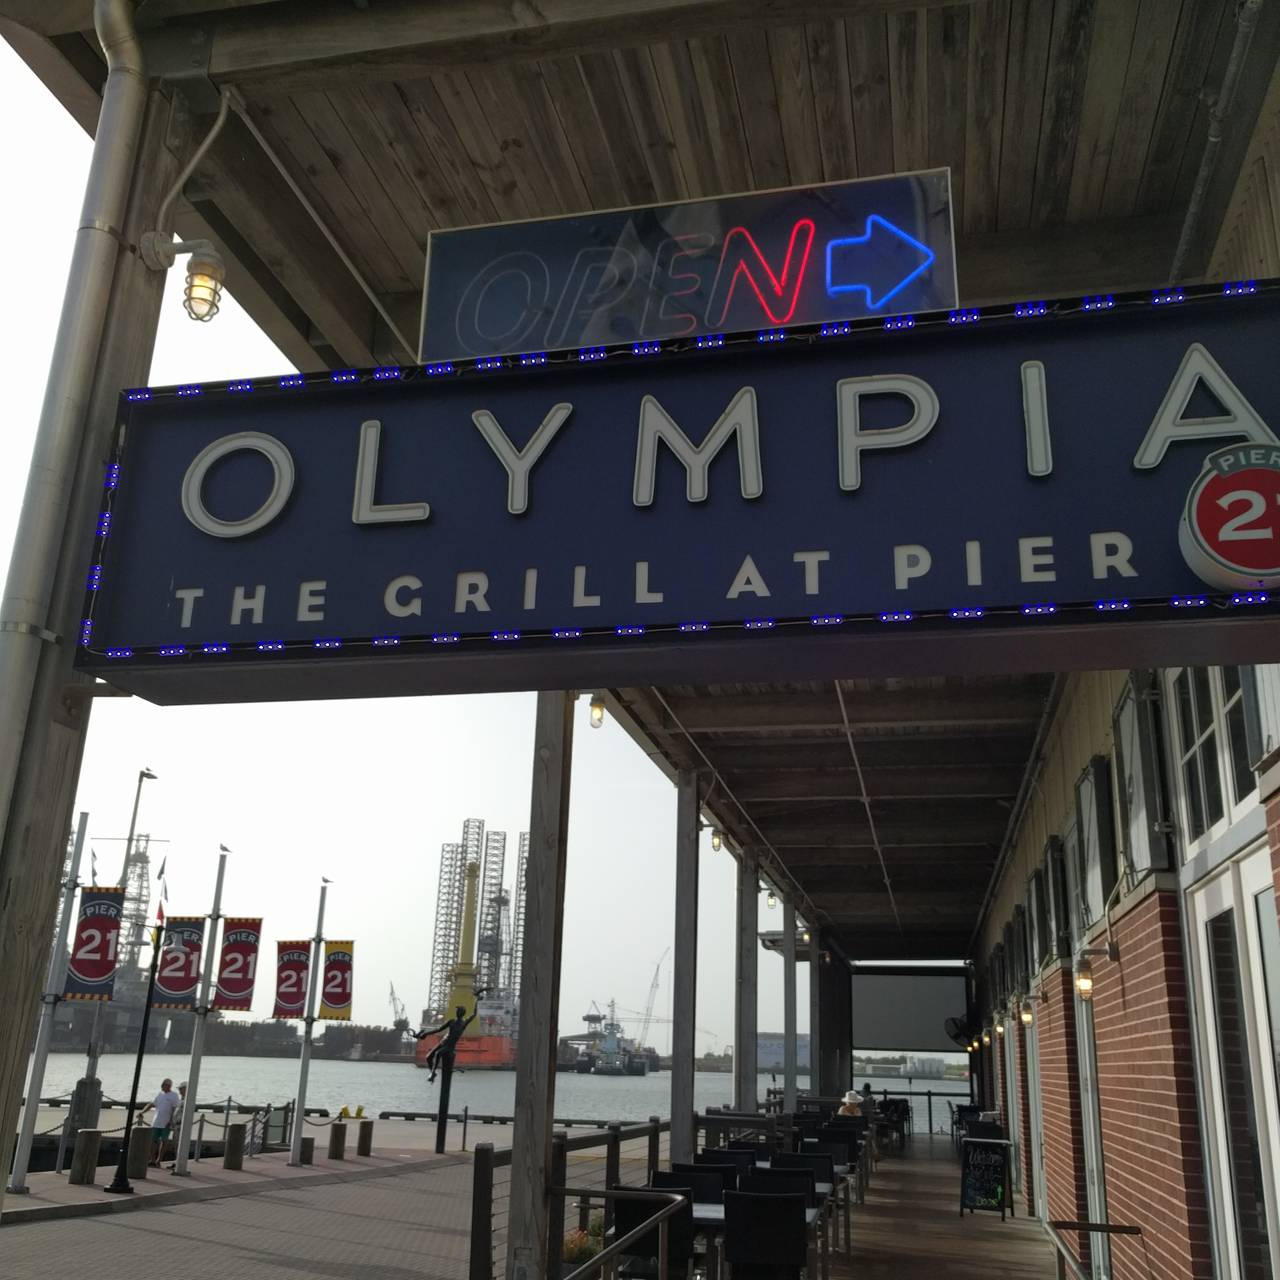 Permanently Closed - Olympia Grill at Pier 21 Restaurant